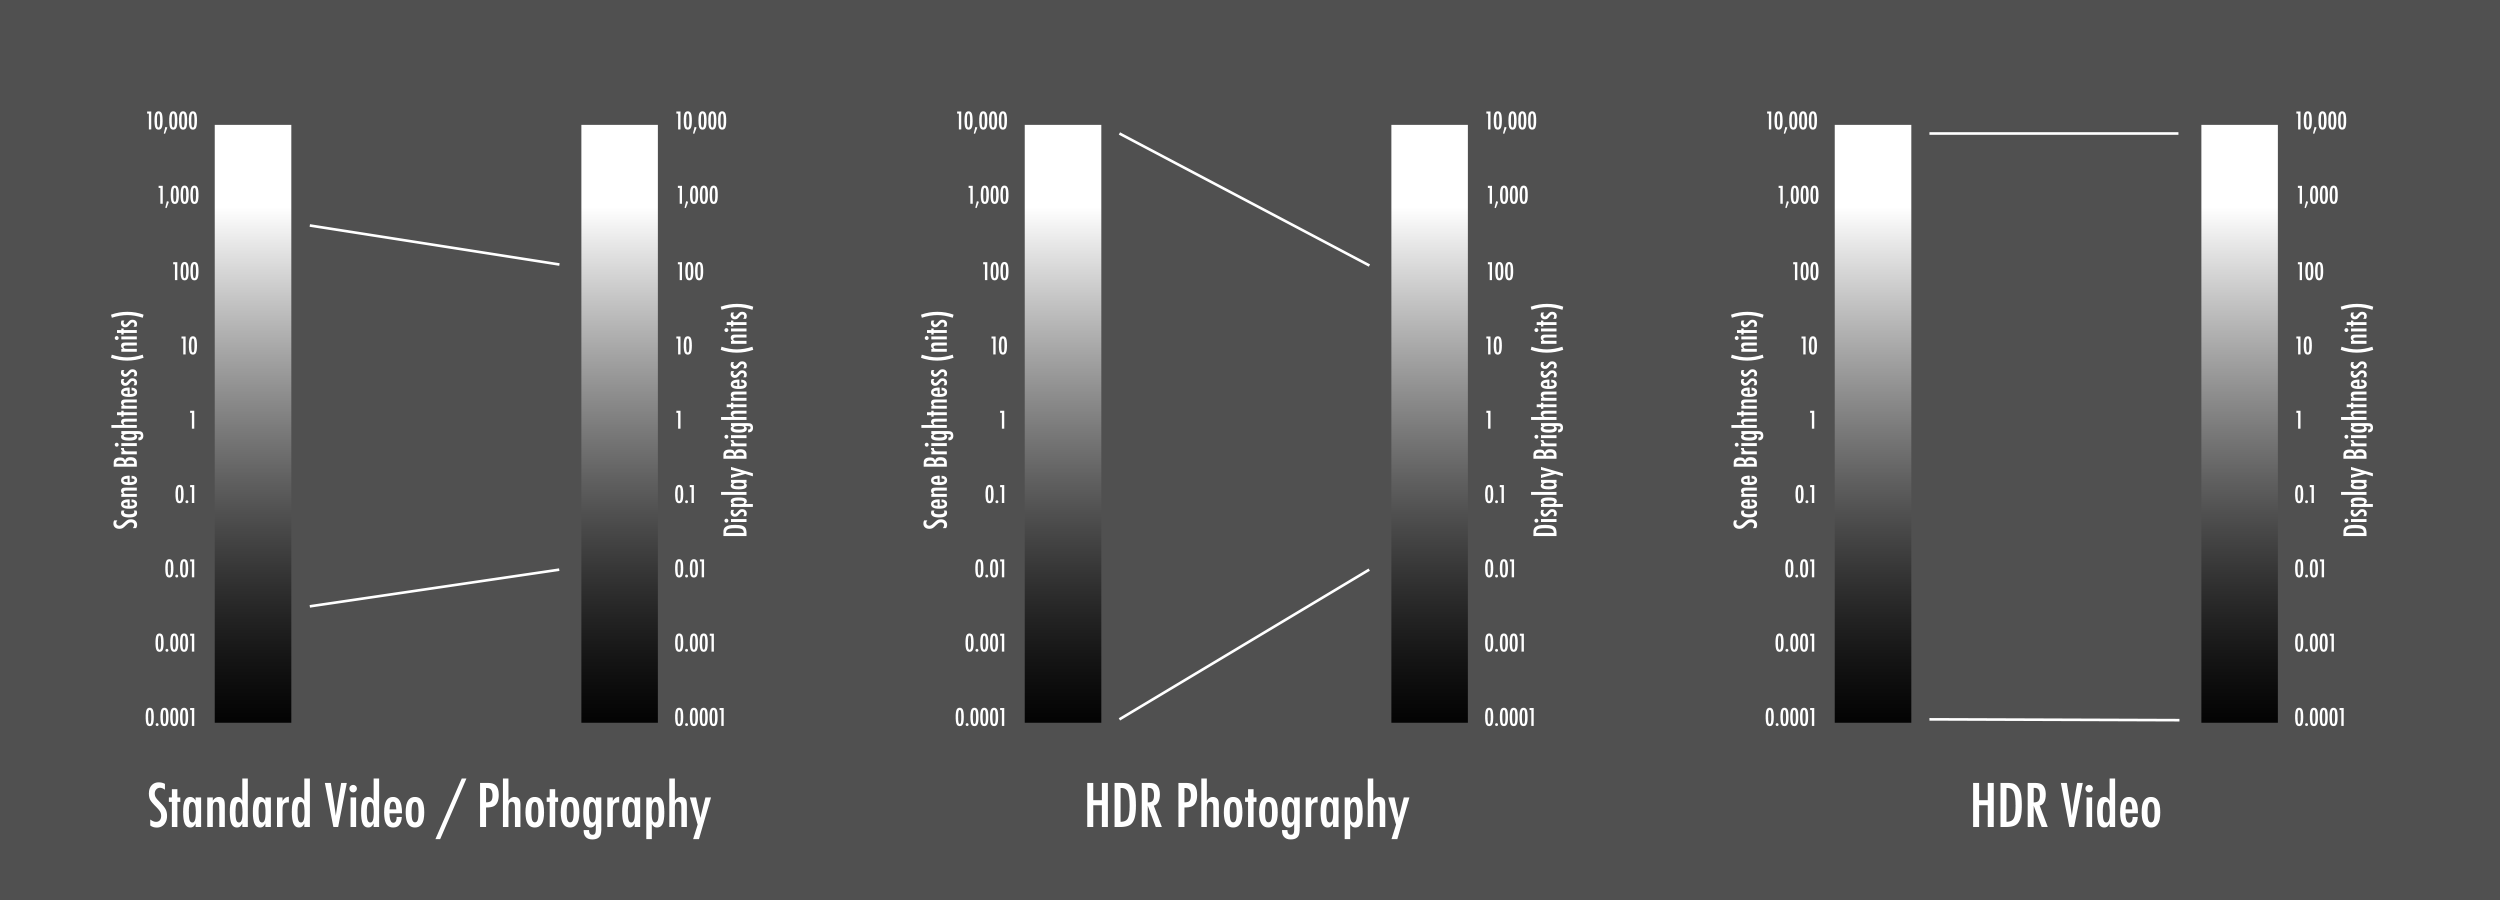 Standard Video / Photography Range vs. HDR Photography vs. HDR Video Ranges